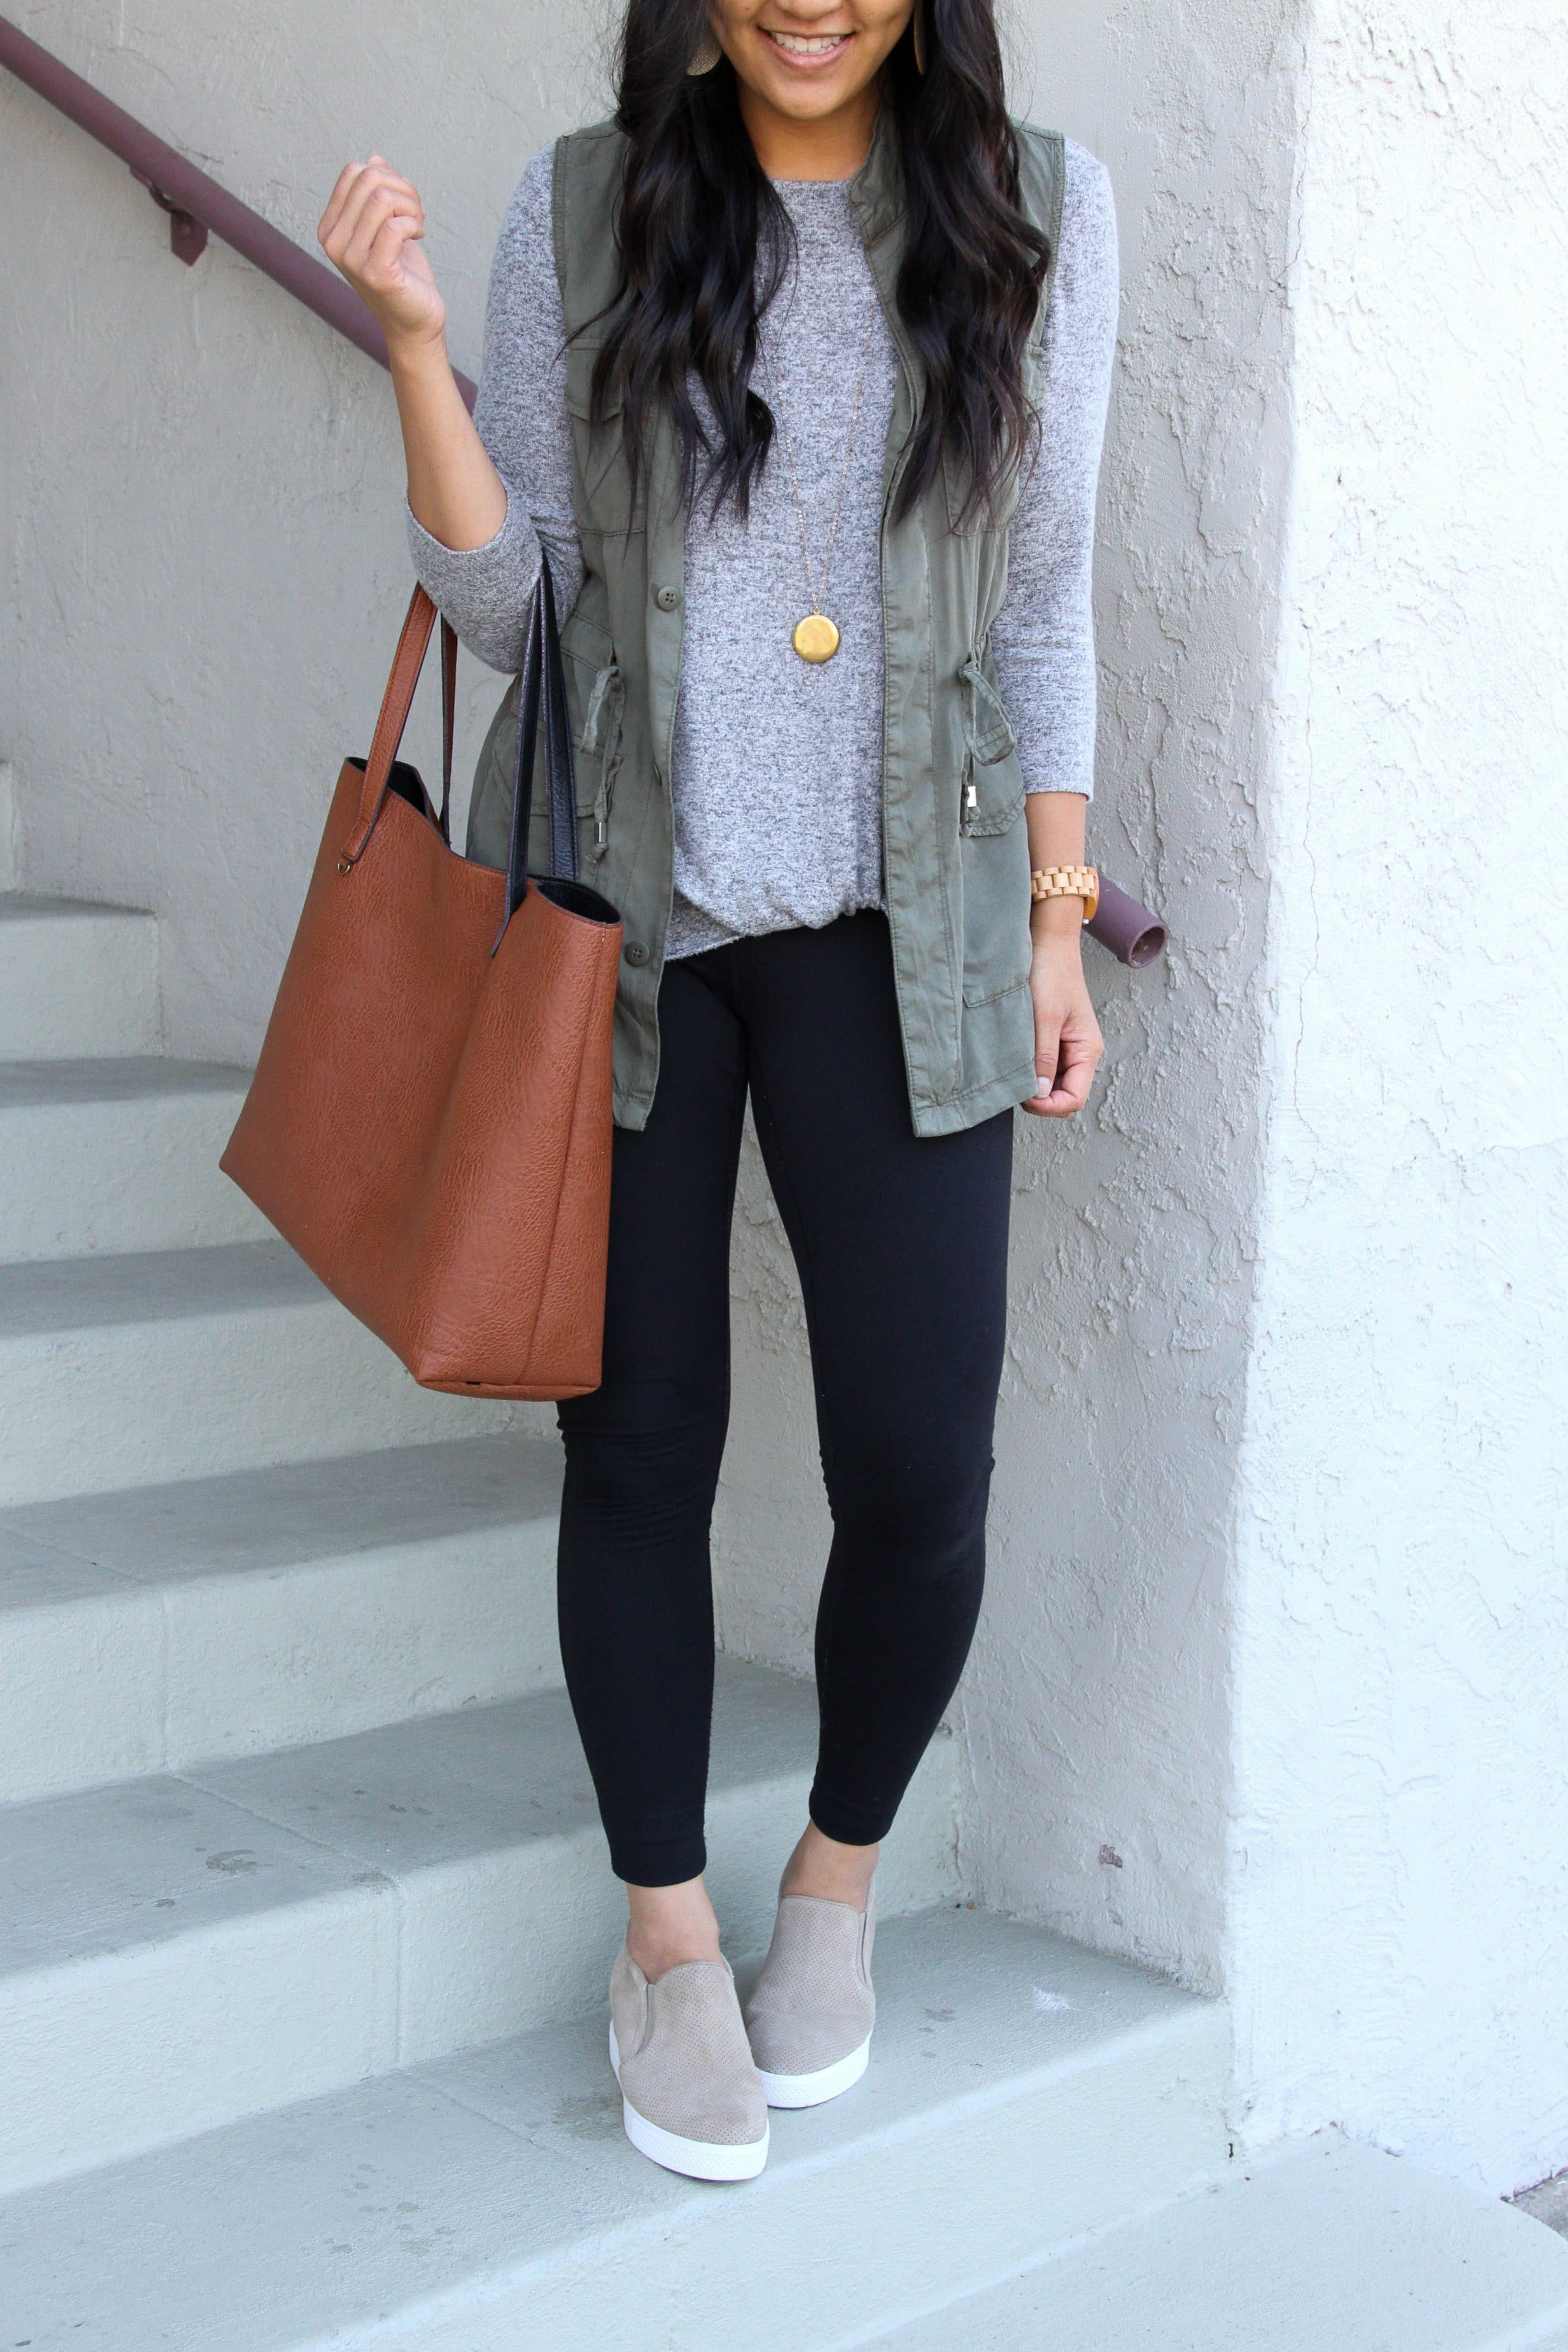 grey twist top + black leggings + olive utility vest + brown tote + taupe sneakers + pendant necklace